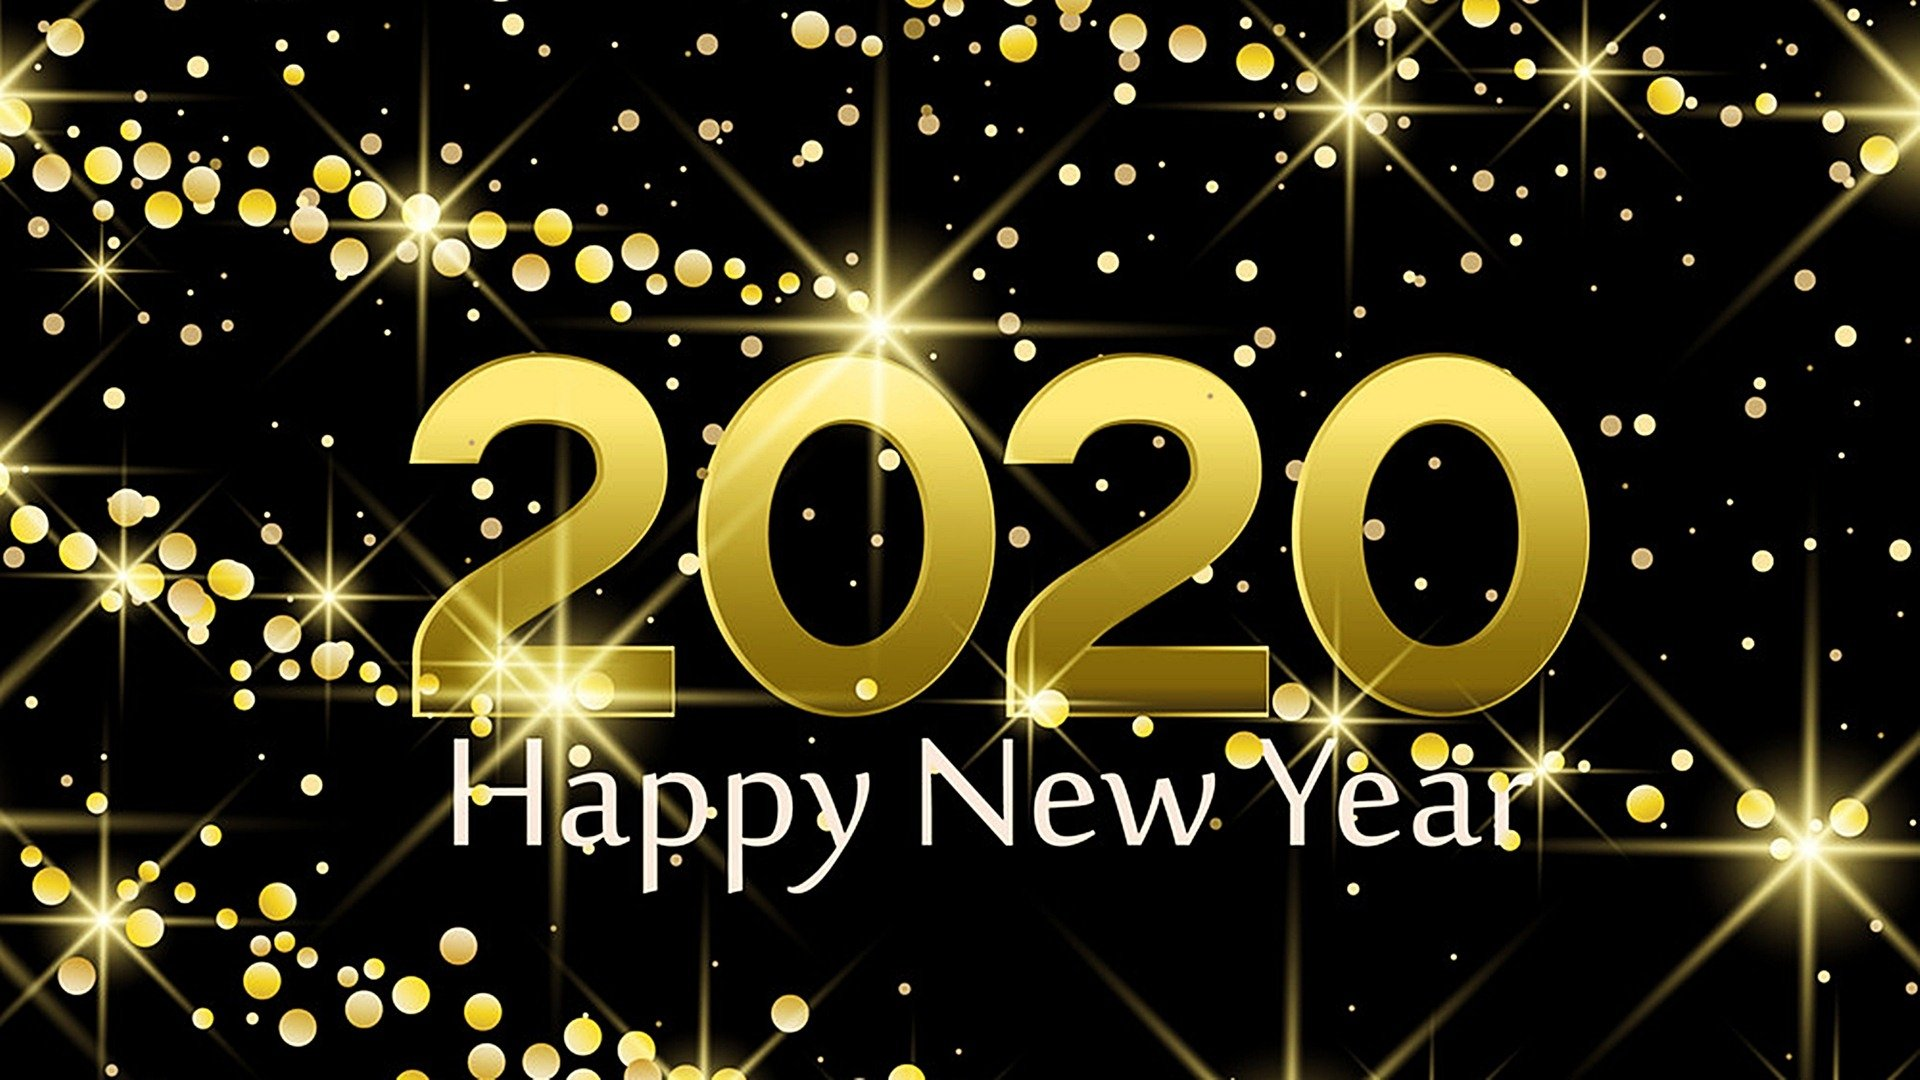 New Year 2020 HD Wallpaper Background Image 1920x1080 ID 1920x1080